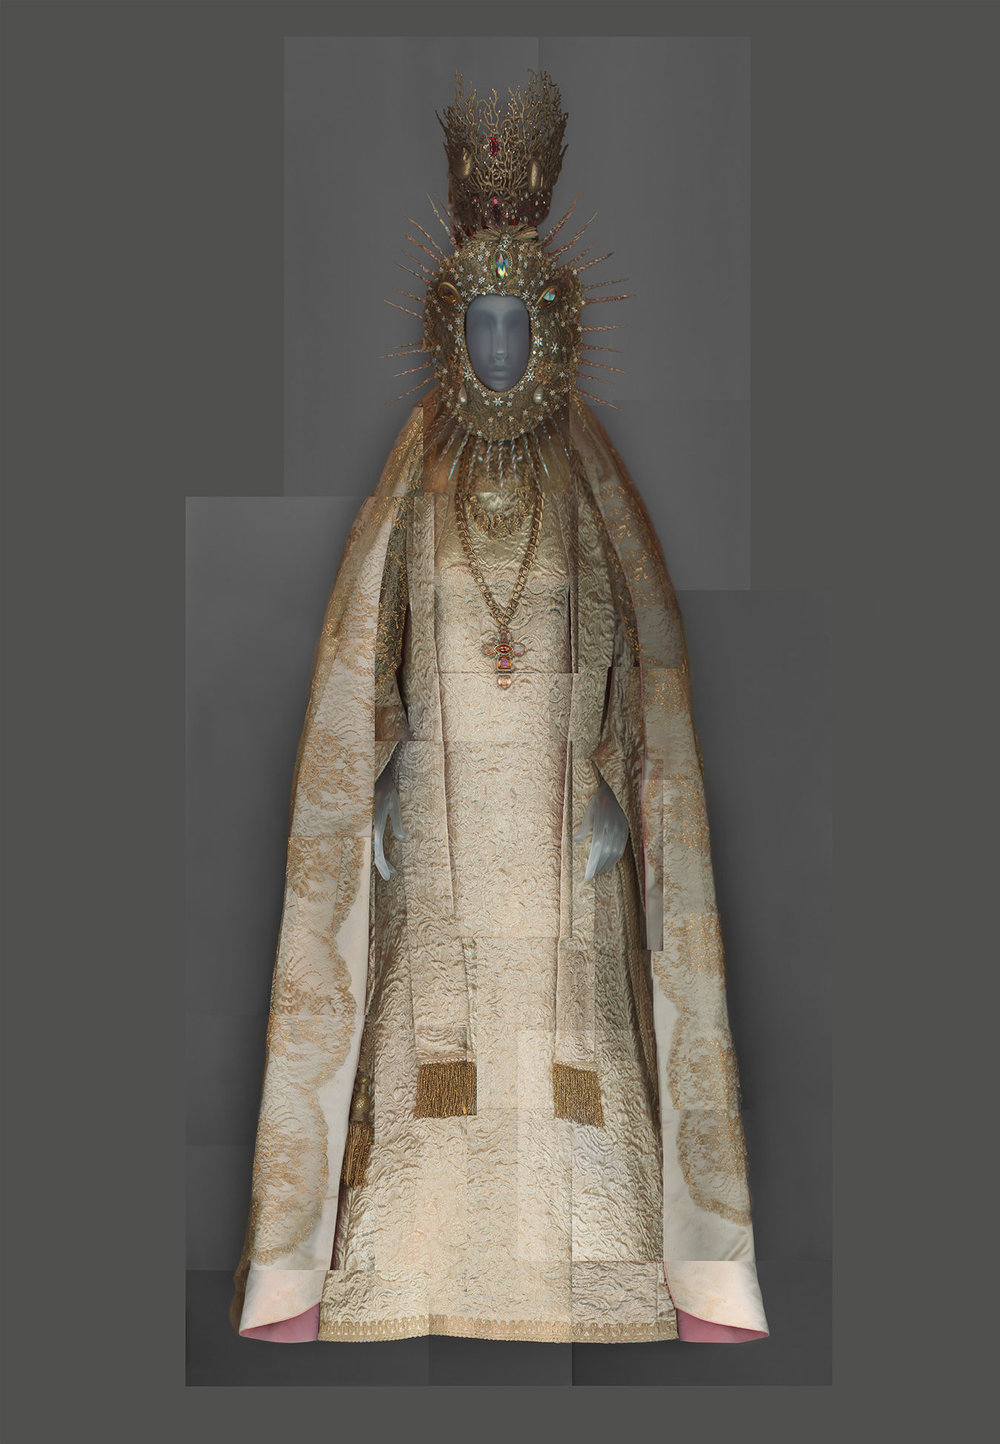 Statuary Vestment for the Virgin of El Rocío, YVES SAINT LAURENT | ca. 1985 | Courtesy of Chapelle Notre-Dame de Compassion, Paris | Image courtesy of The Metropolitan Museum of Art | Digital Composite Scan by Katerina Jebb